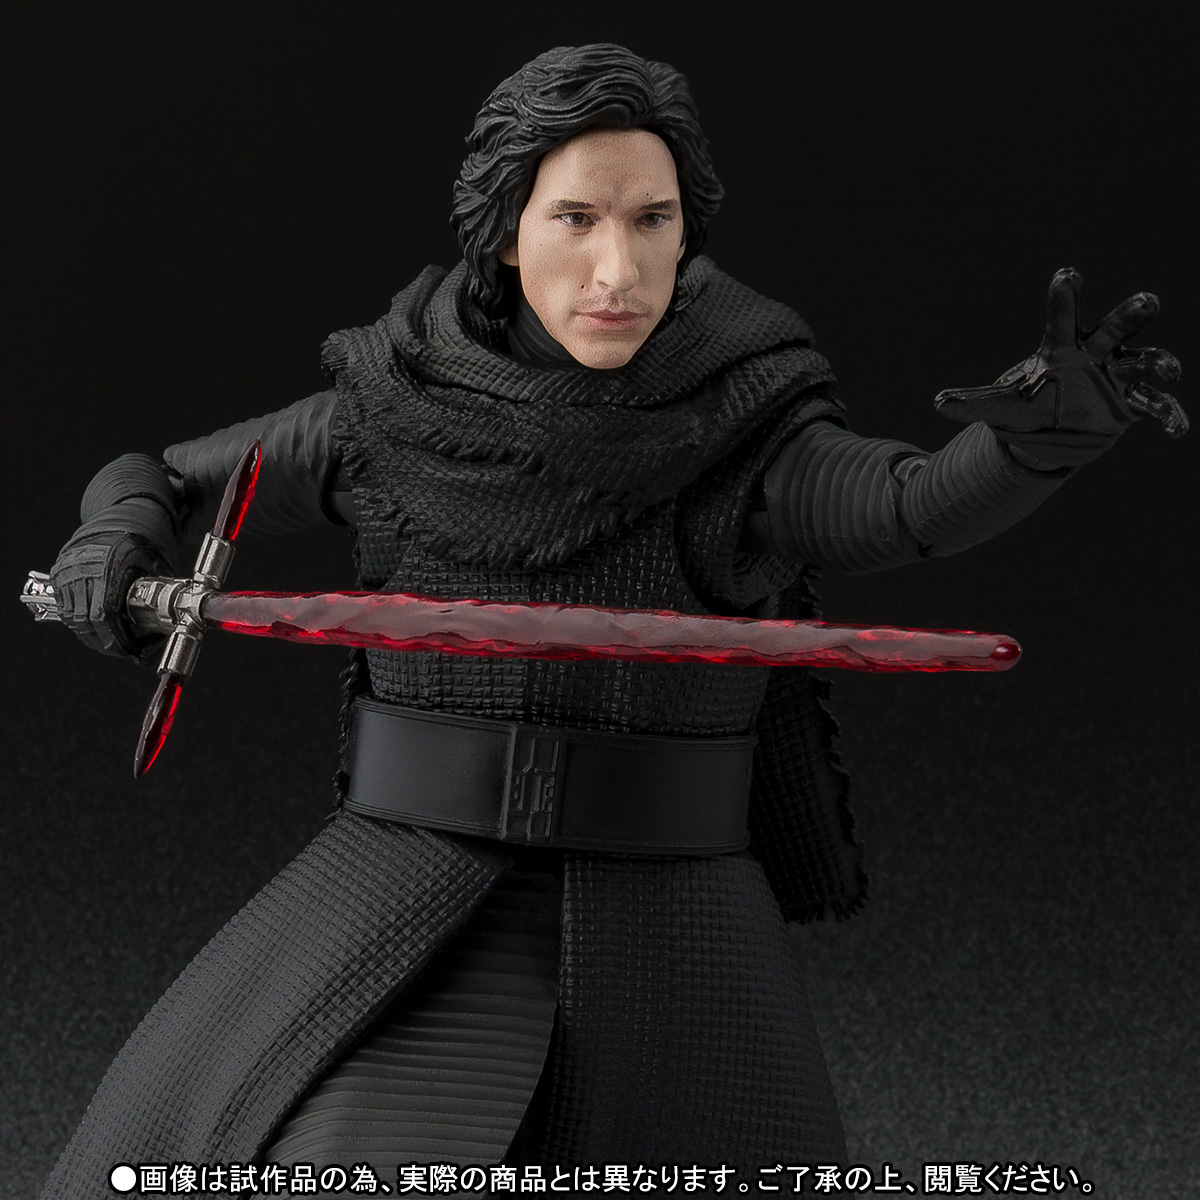 Star Wars: The Force Awakens - Kylo Ren - S.H.Figuarts (Limited Pre-order)